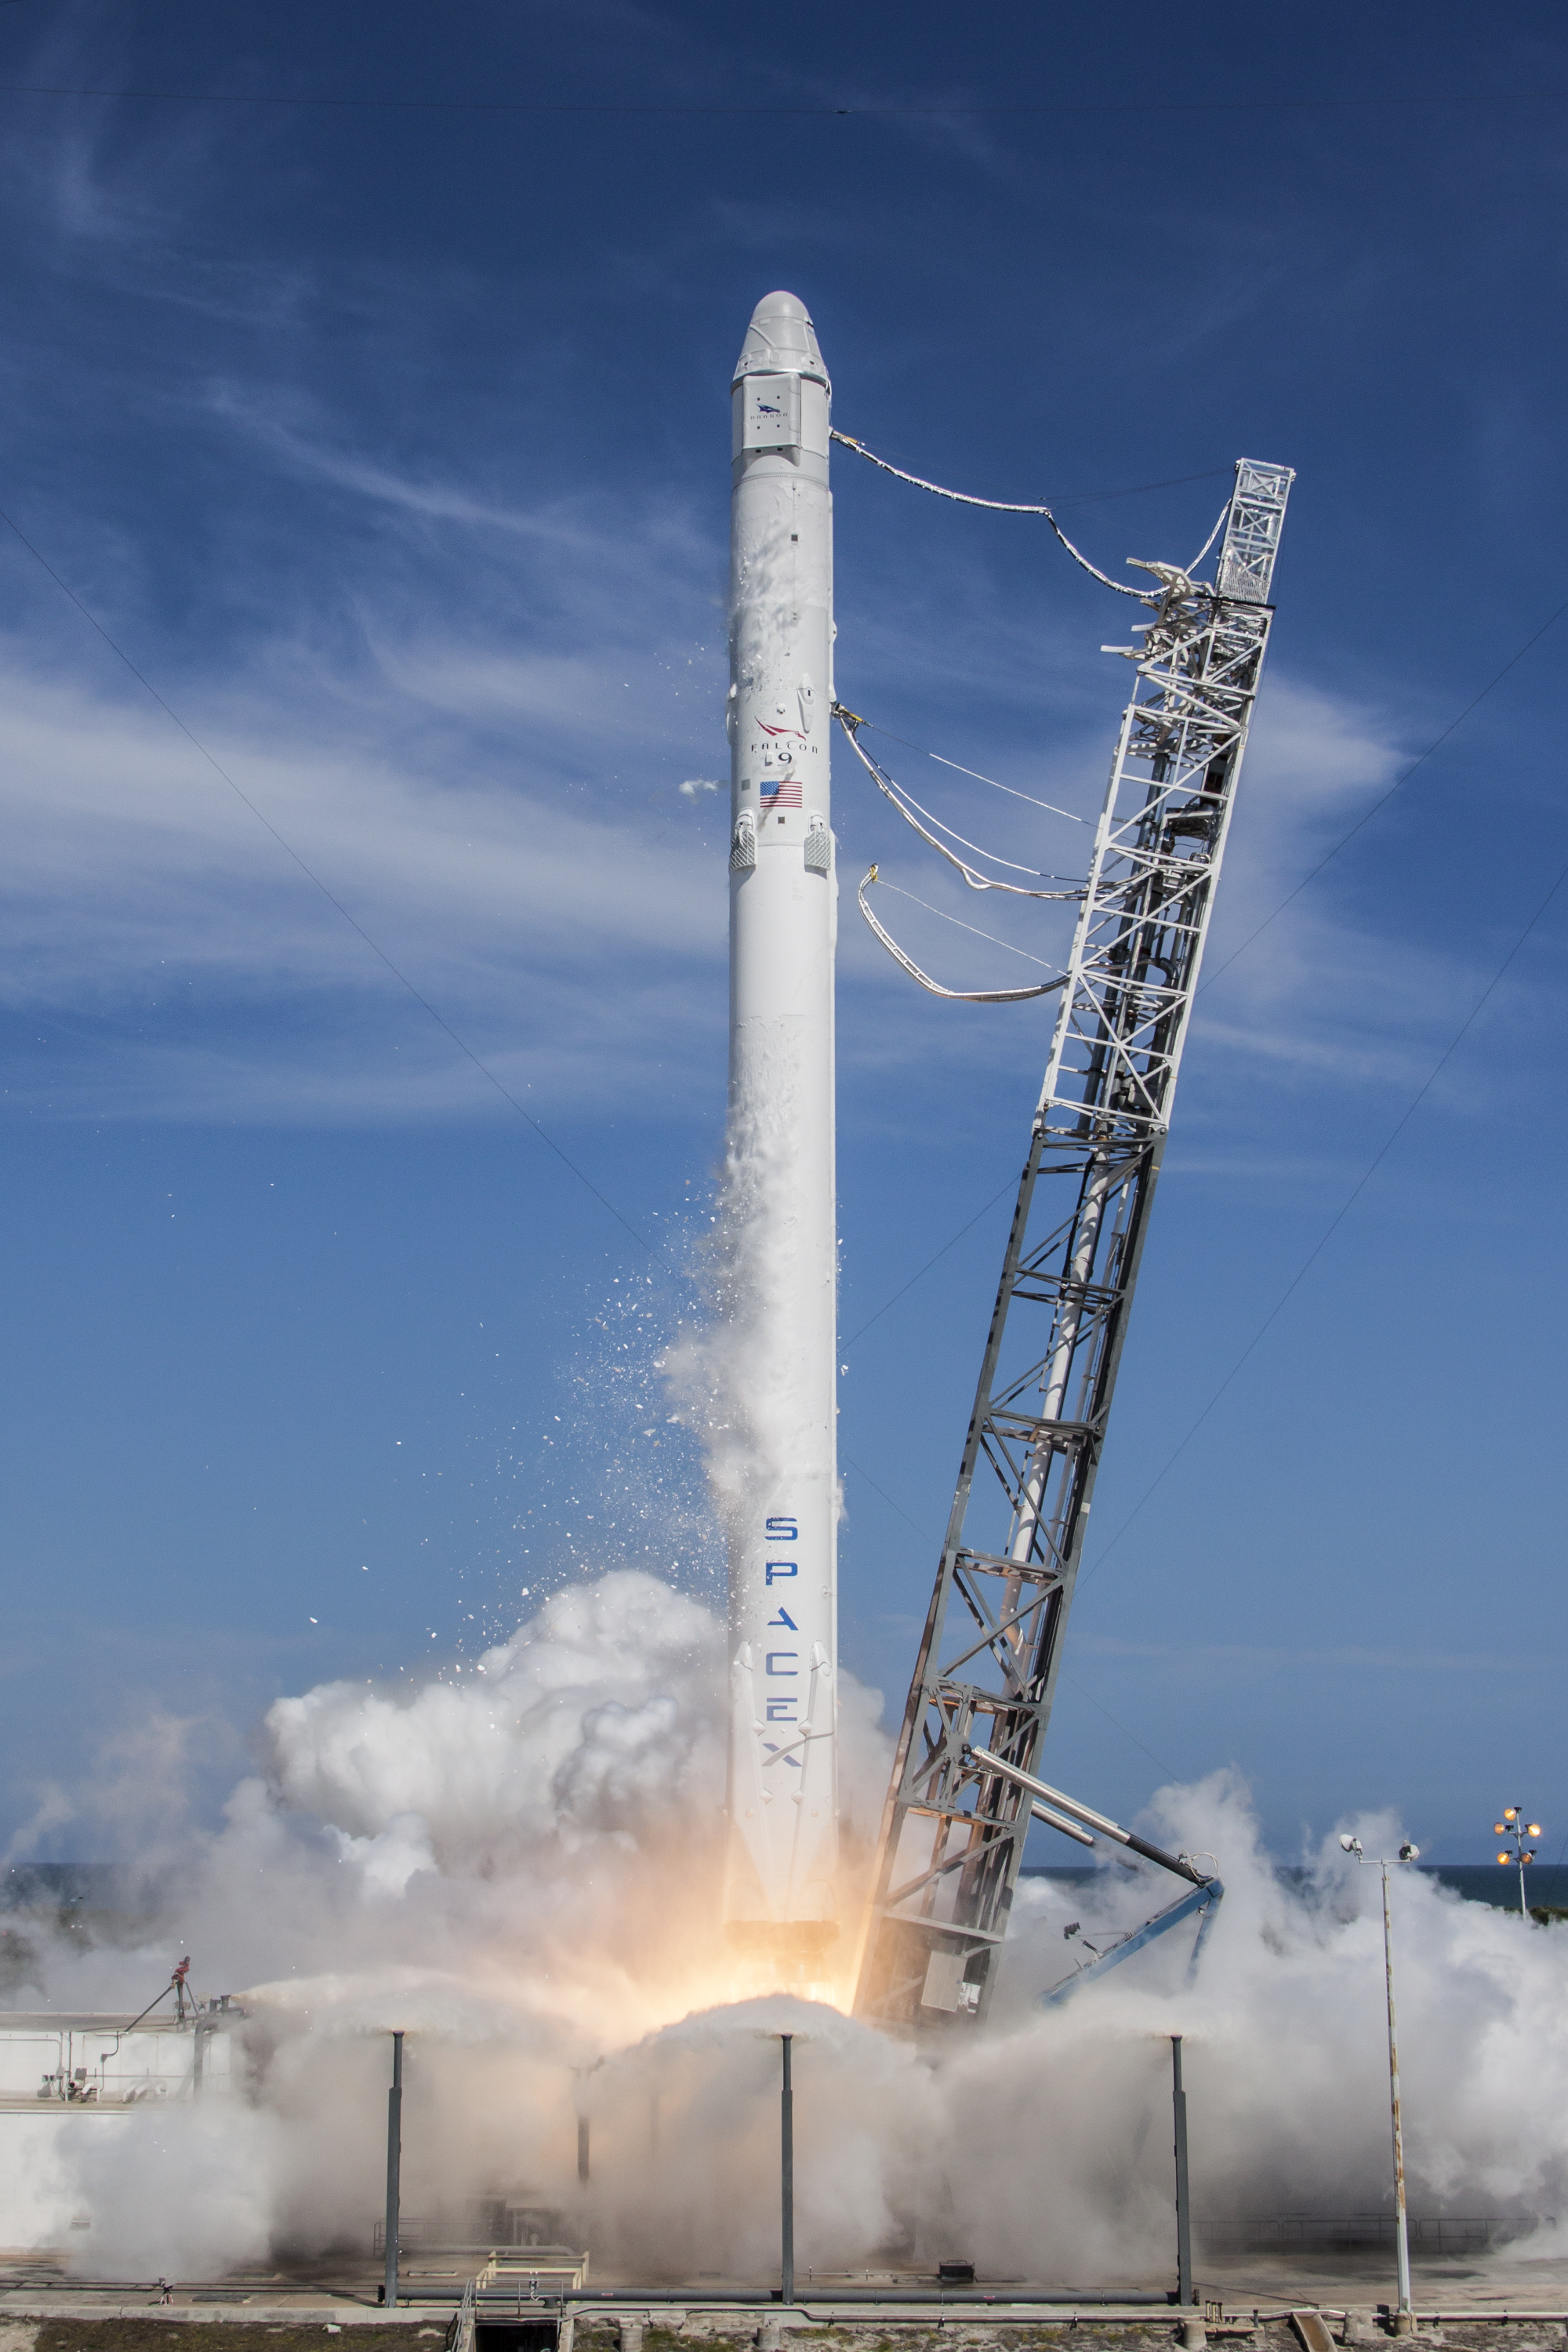 CRS6 launch. Photo by SpaceX. Used with permission.